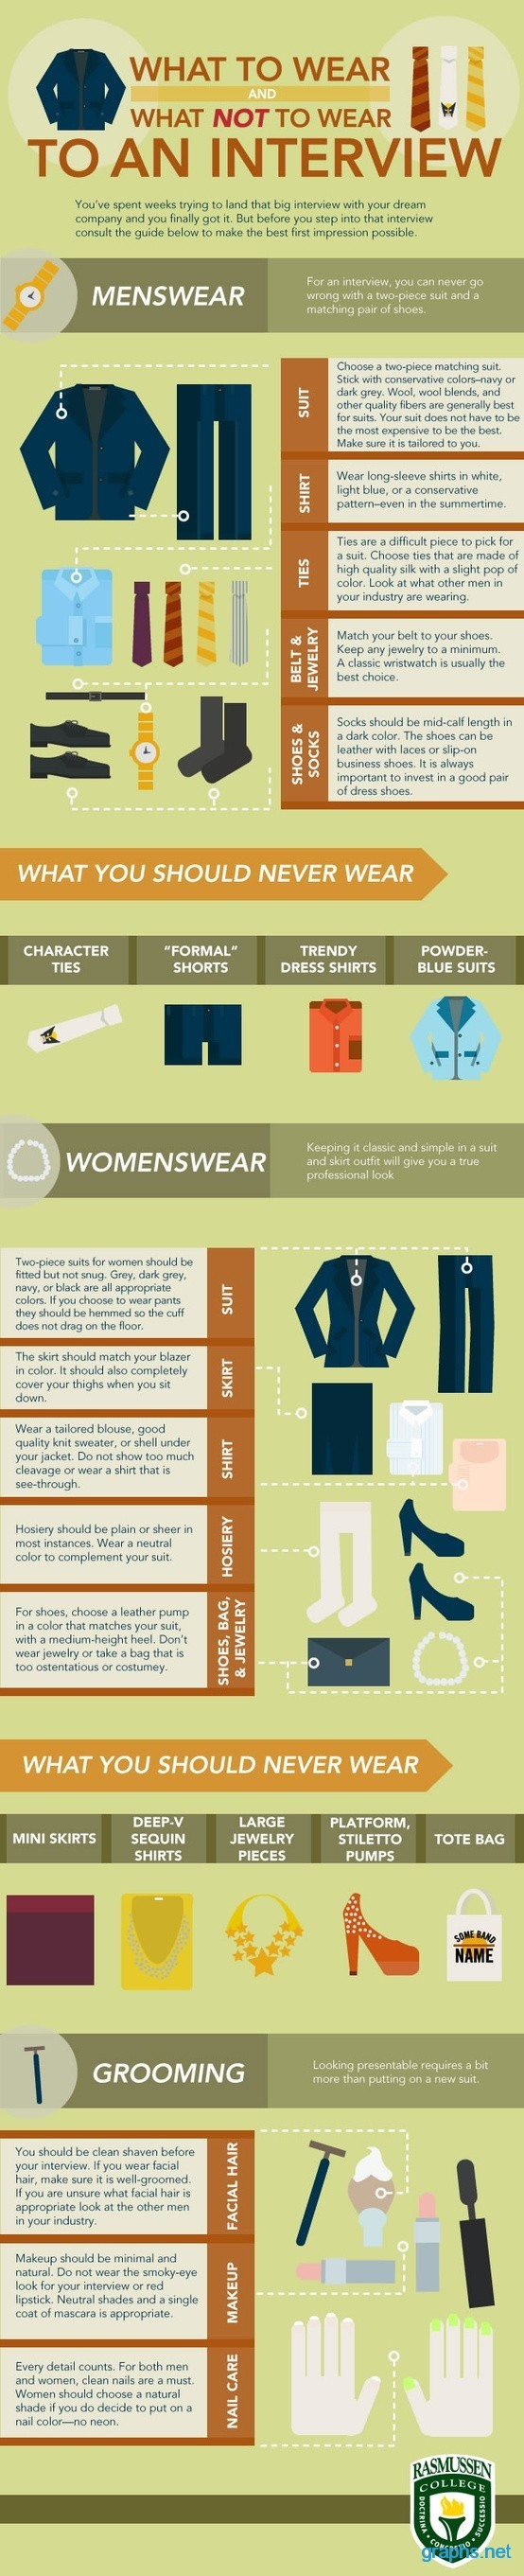 Best Interview Outfits for Women and Men